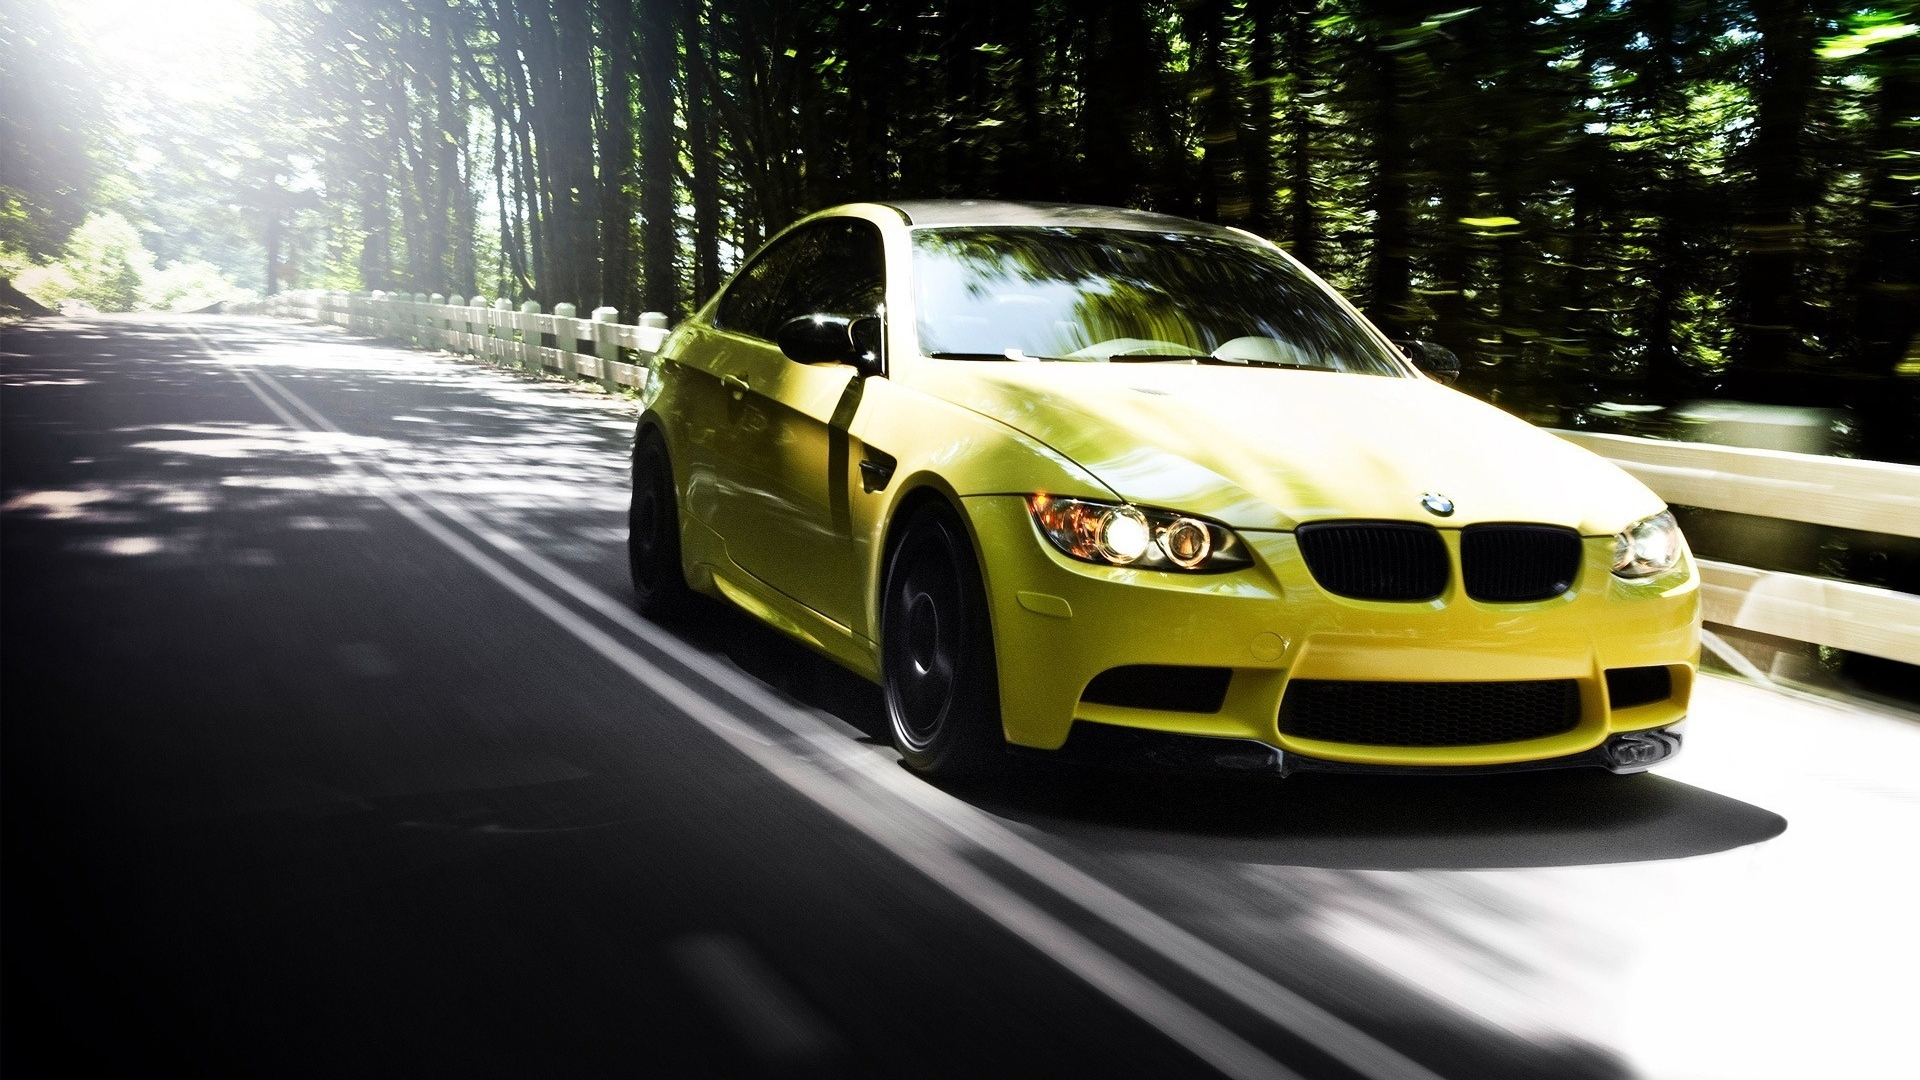 Download Wallpaper 1920x1080 Auto Bmw M3 Yellow Road Forest Summer Full Hd 1080p Hd Background